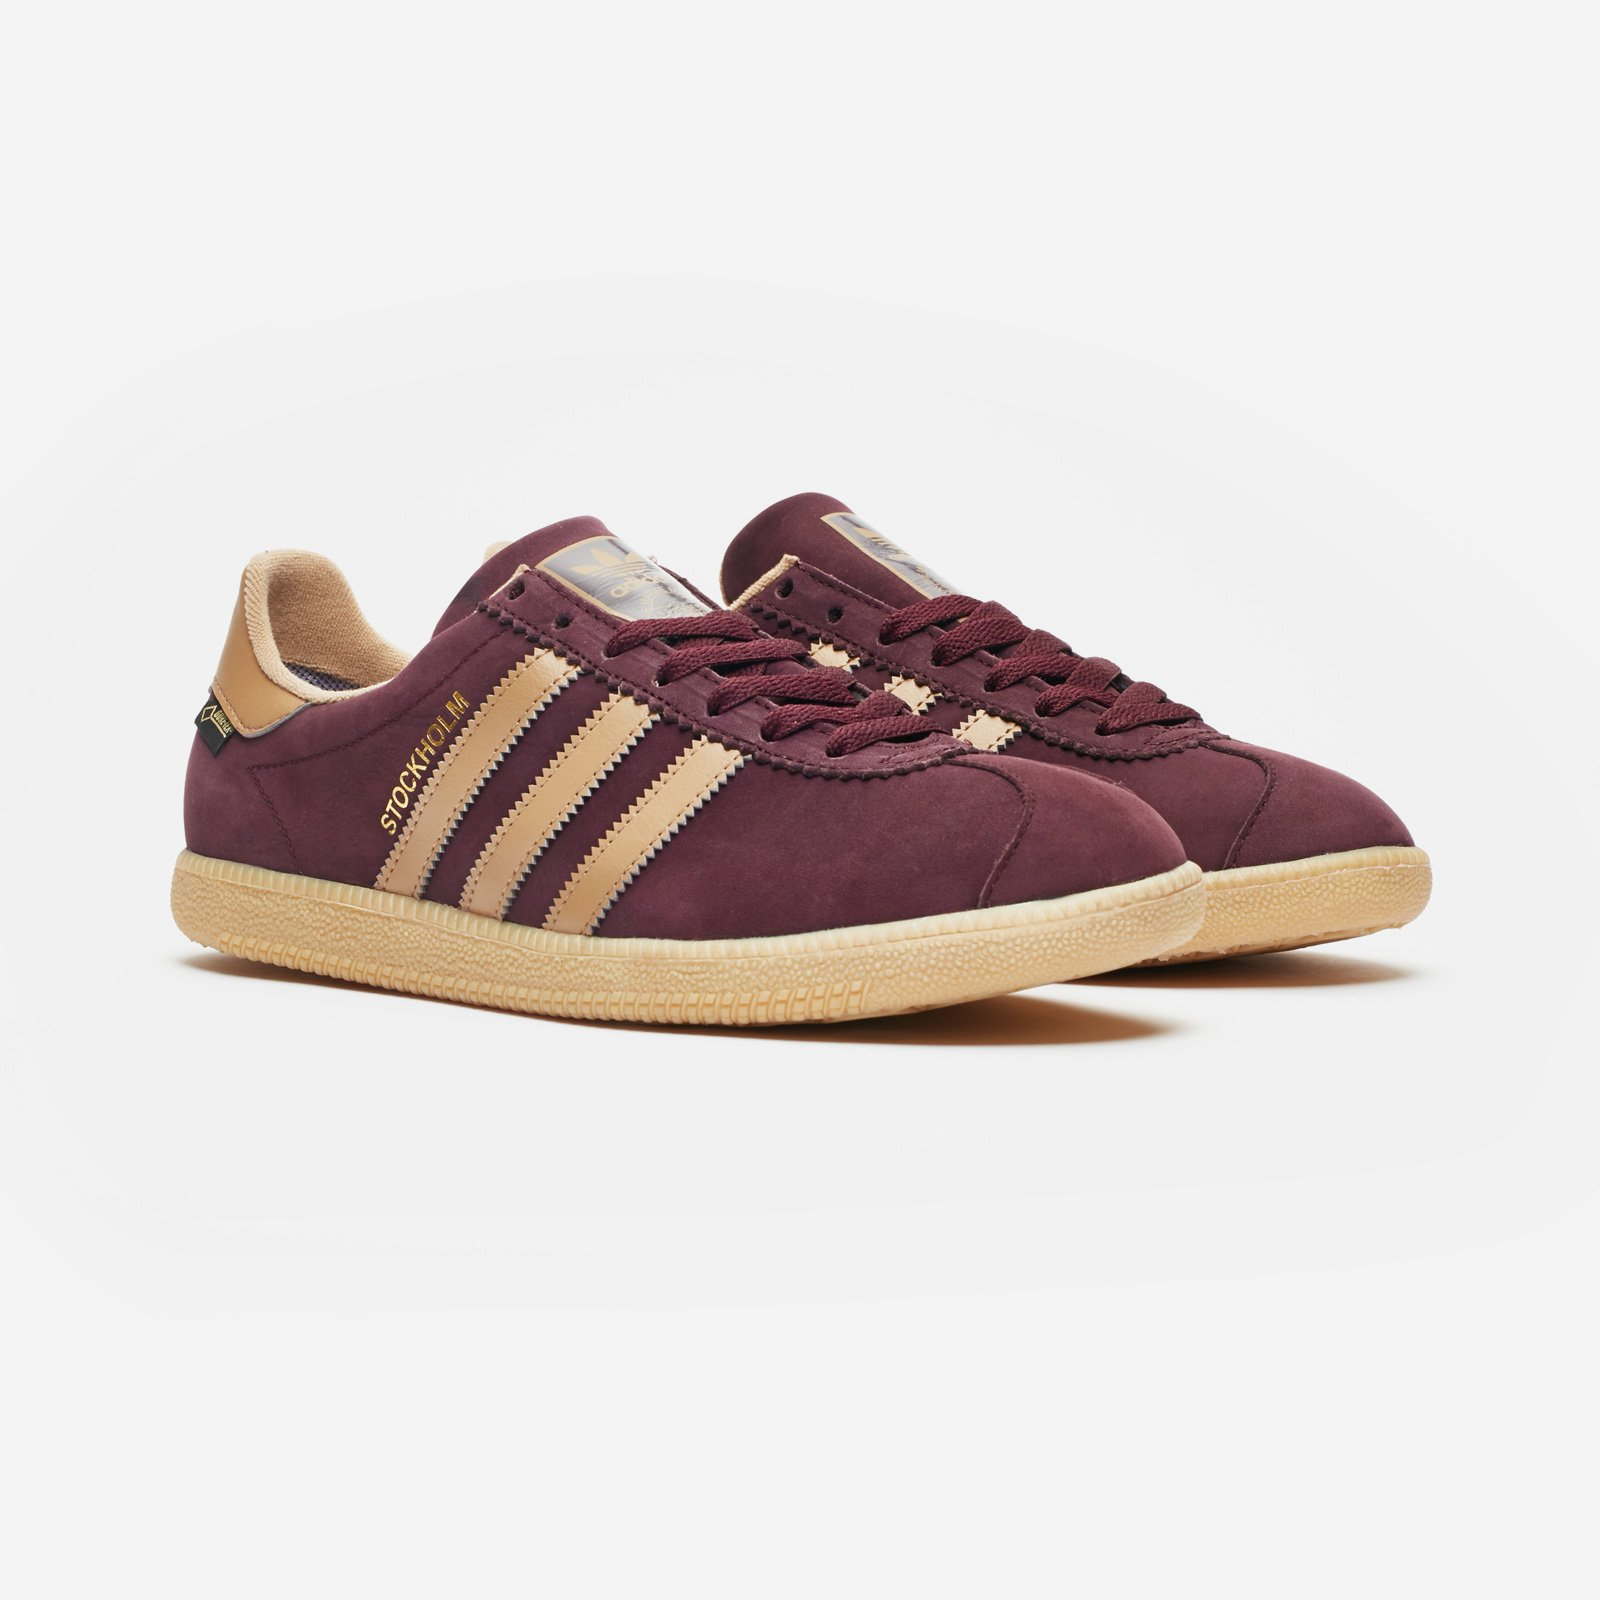 Adidas Stockholm : Buy Adidas Shoes for Men and Women Online